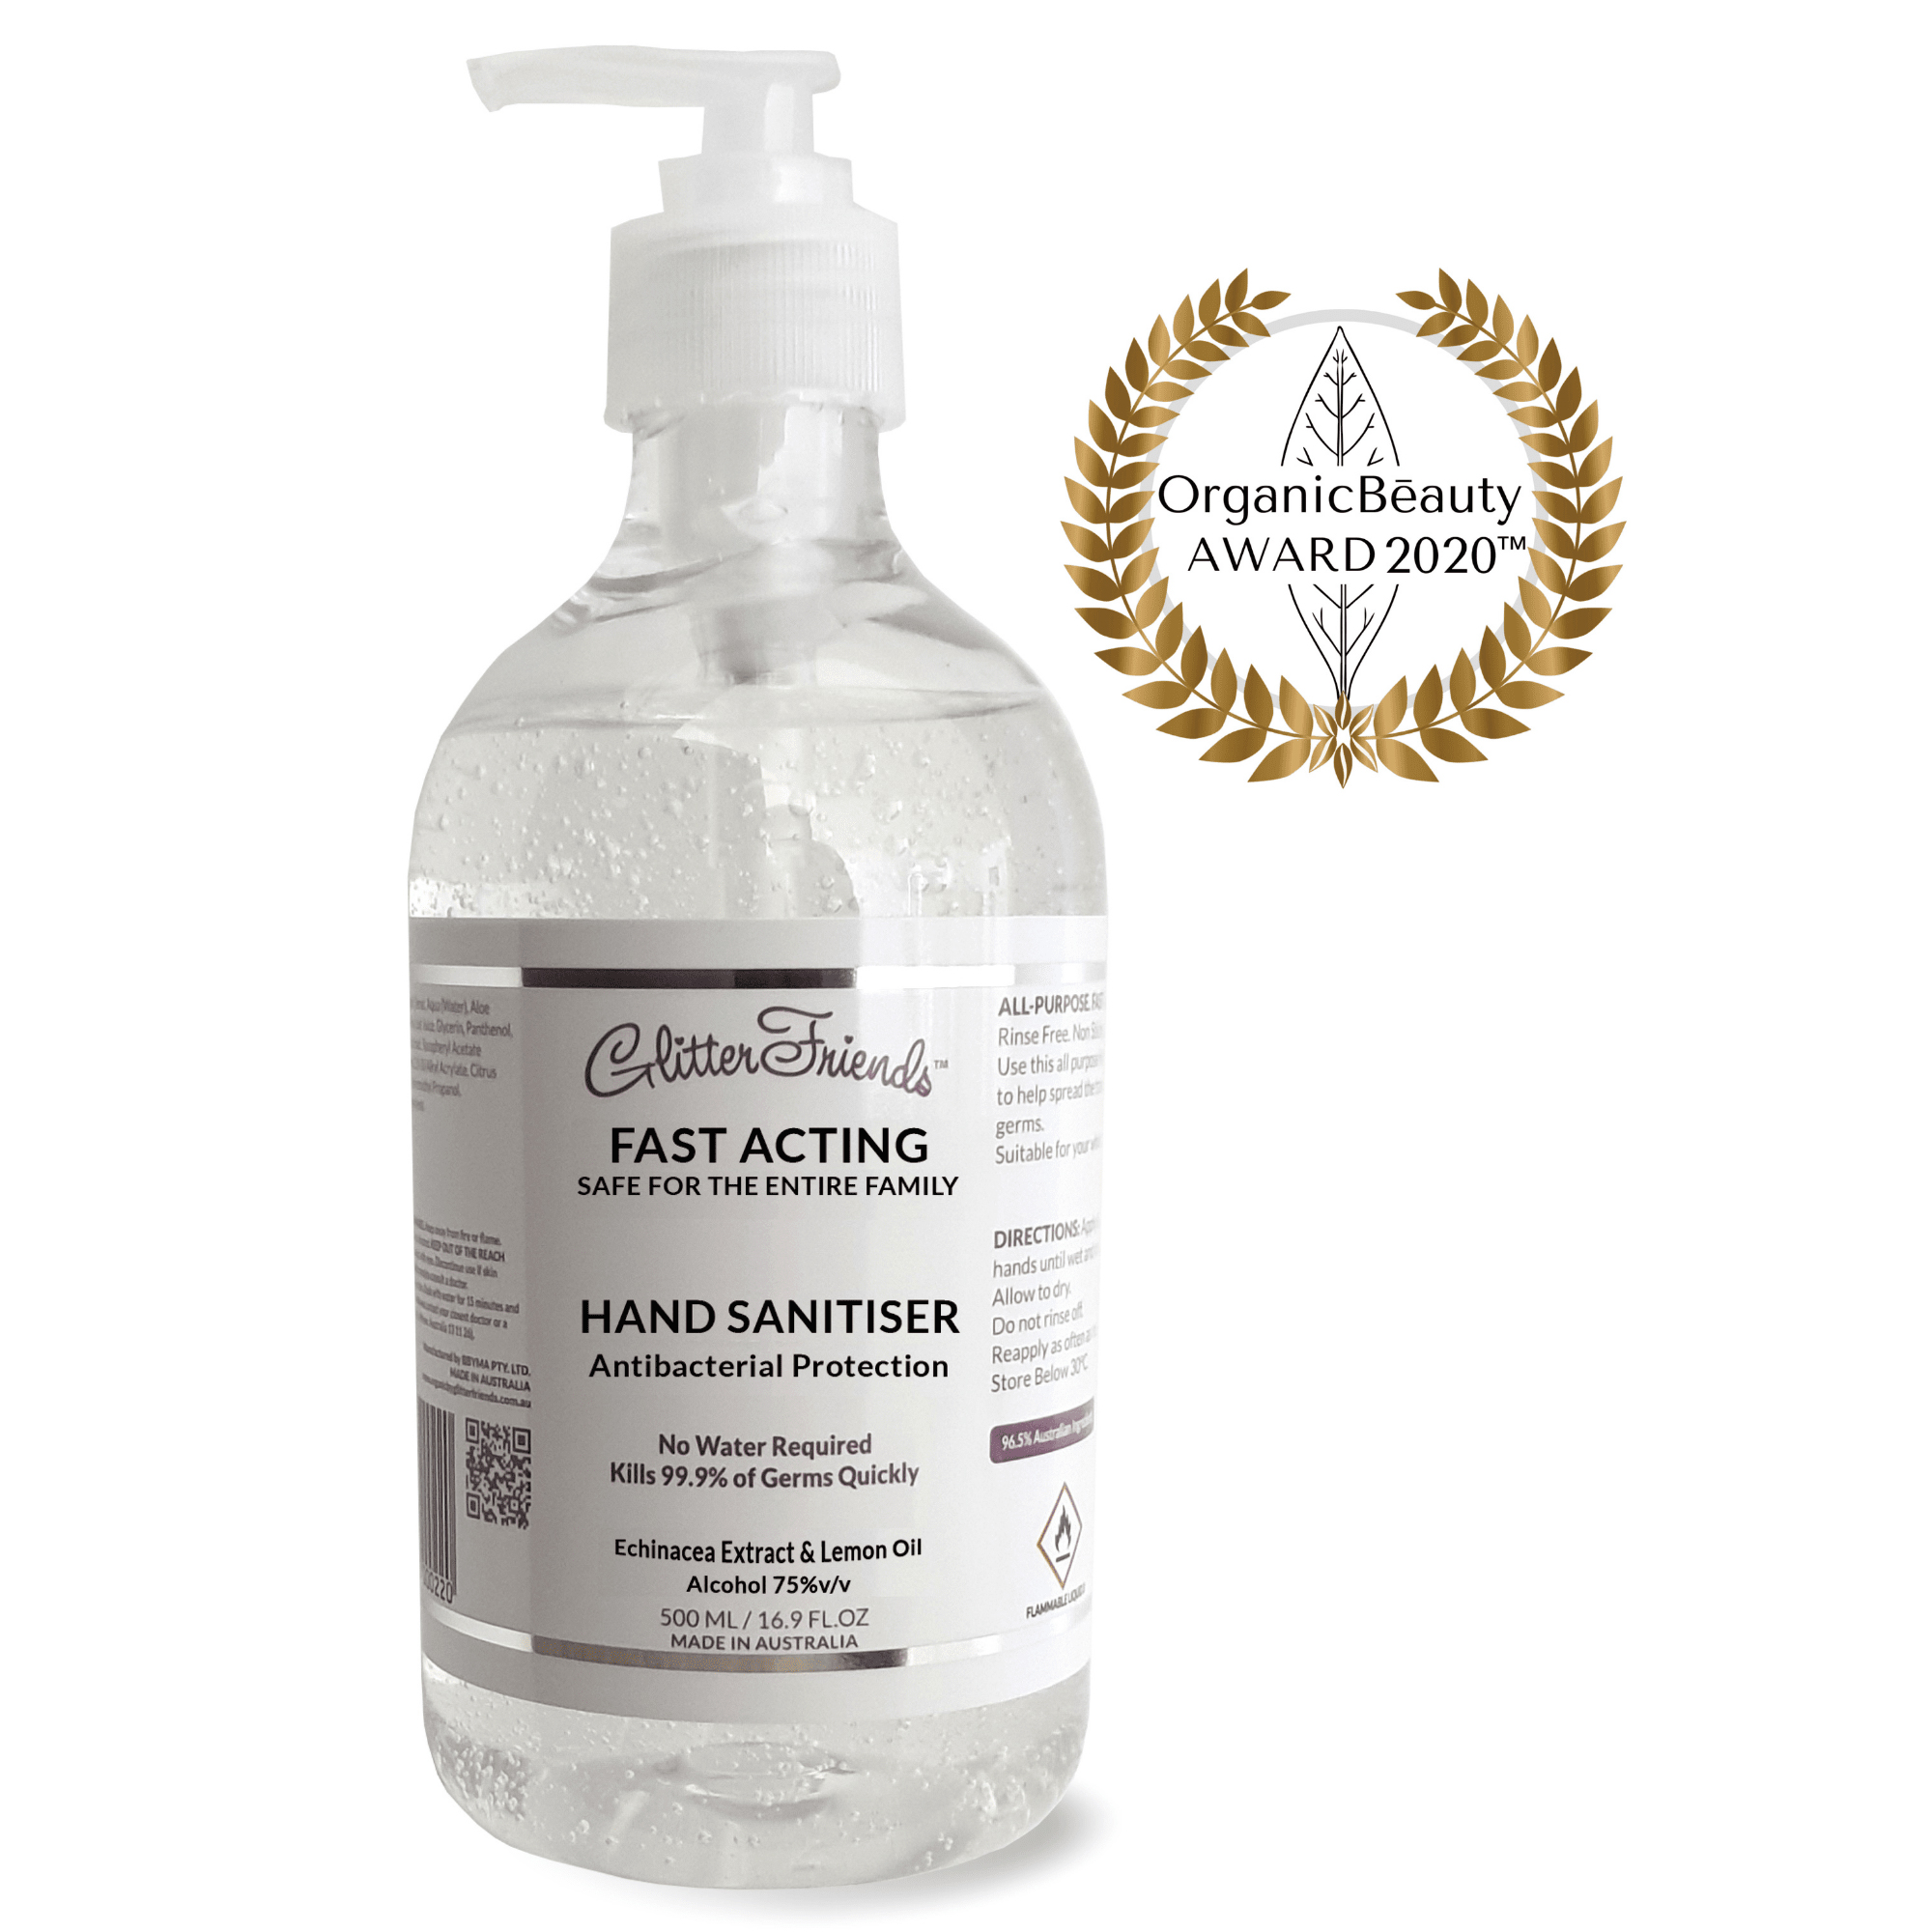 Hand sanitiser Gold Winner Beauty Award 2020 made in Australia from 96.5% Australian Ingredients